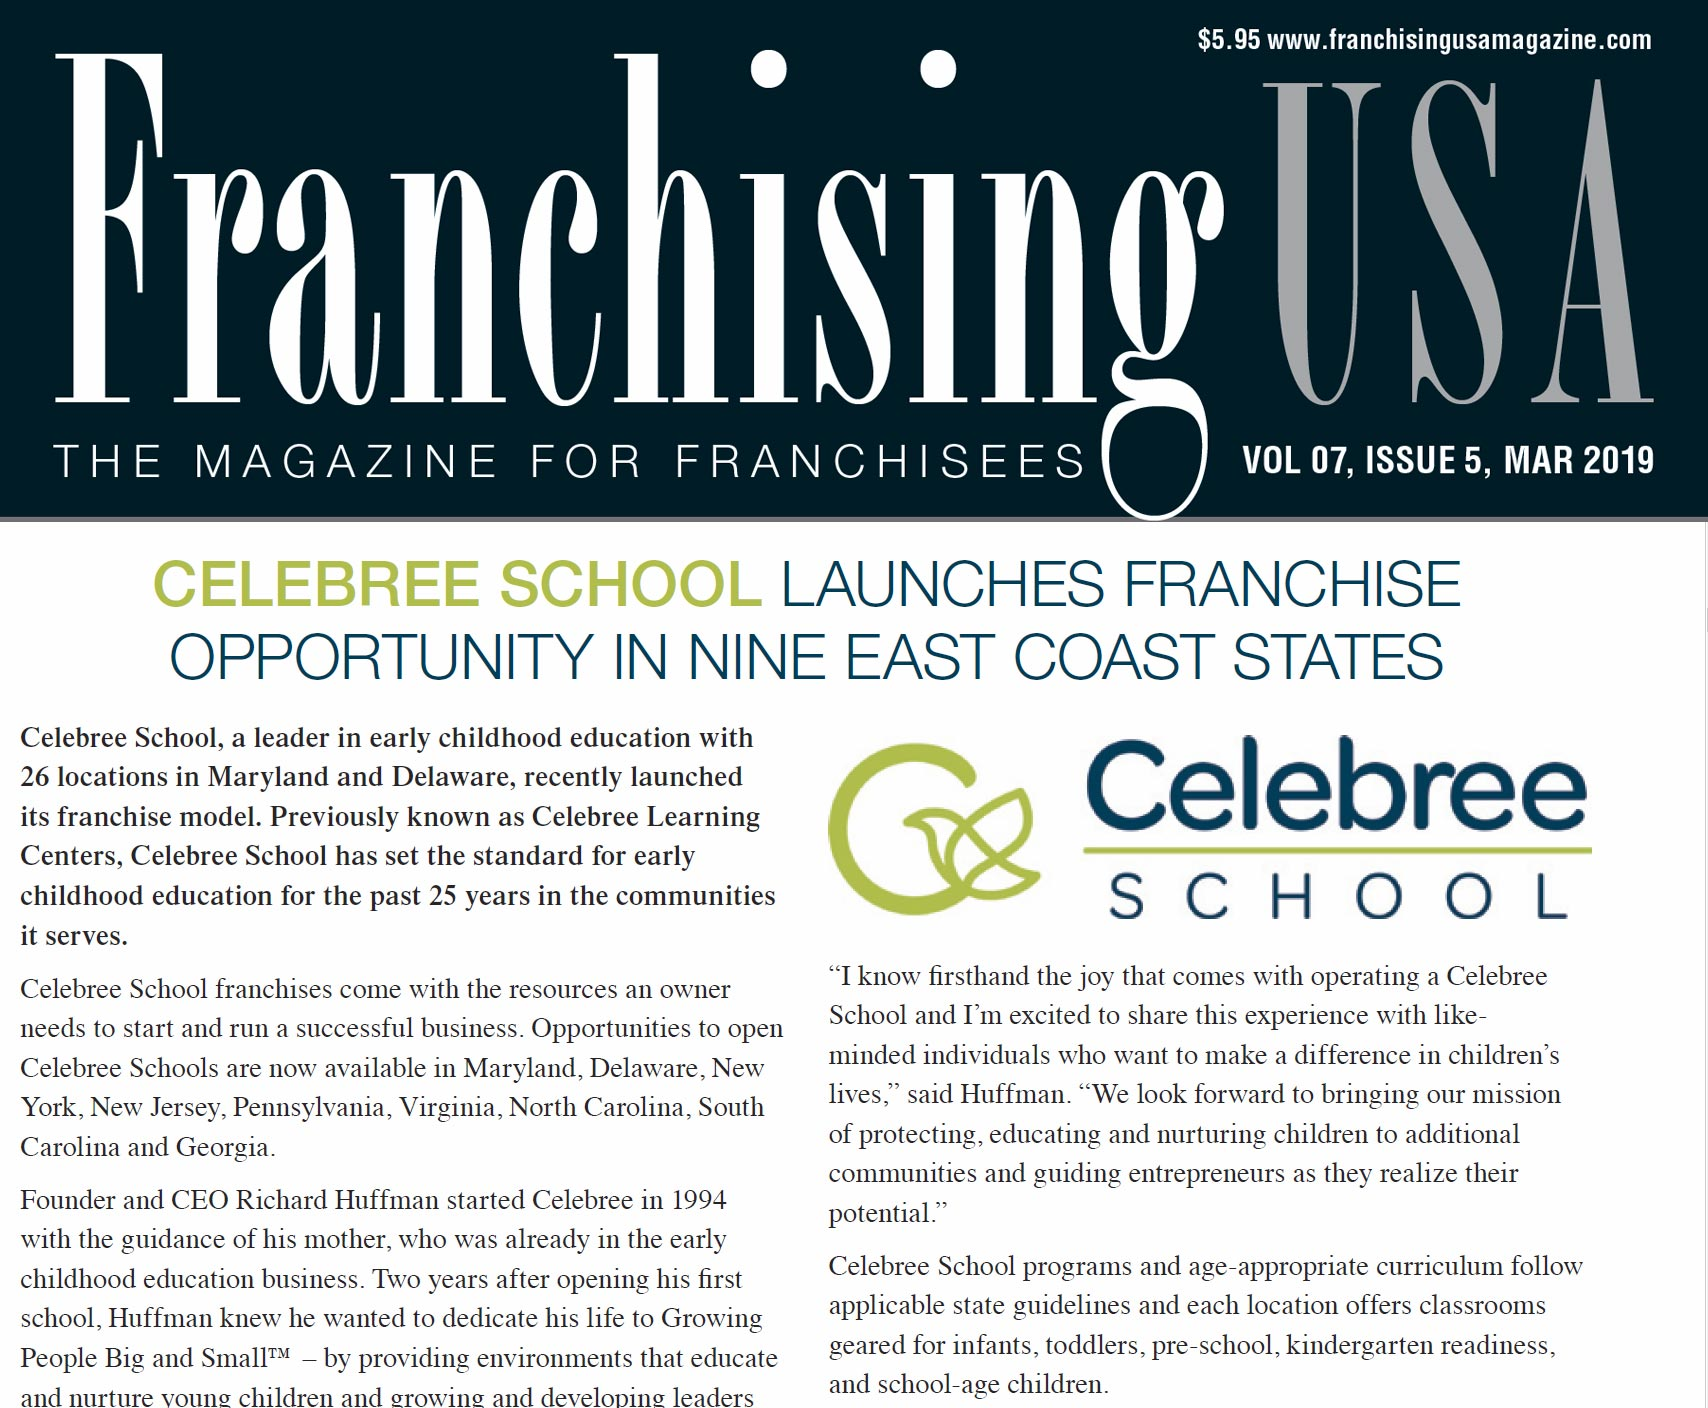 Franchising USA March 2019